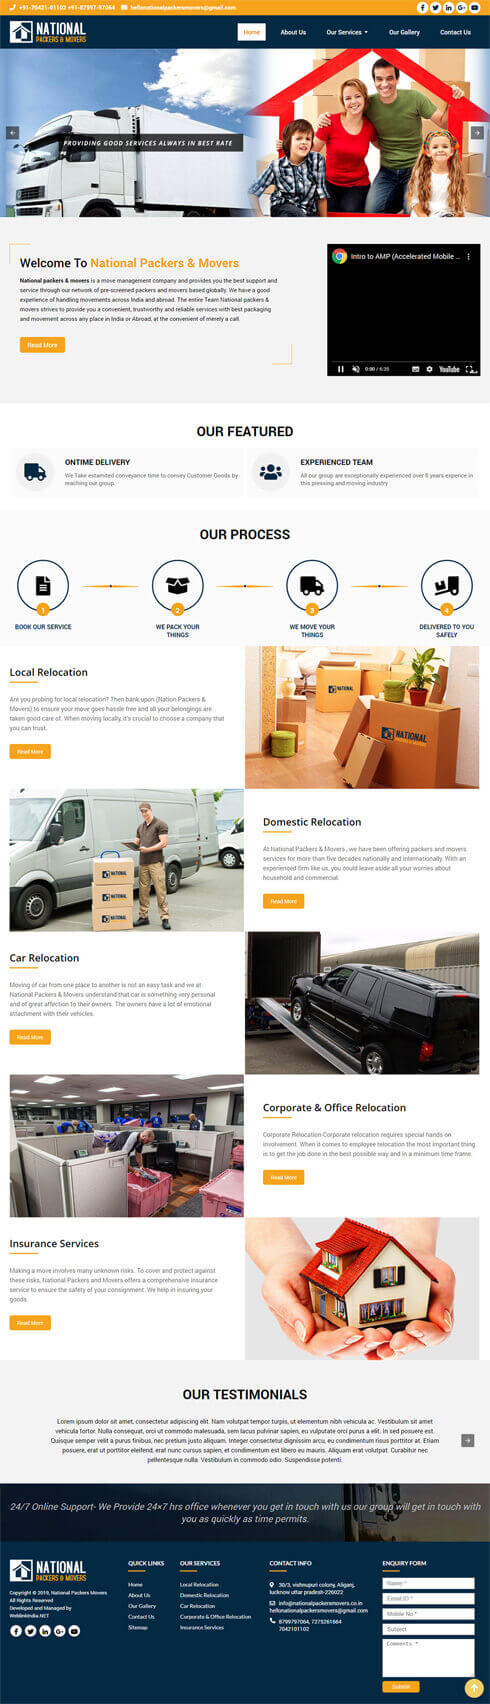 National Packers Movers India Web Design